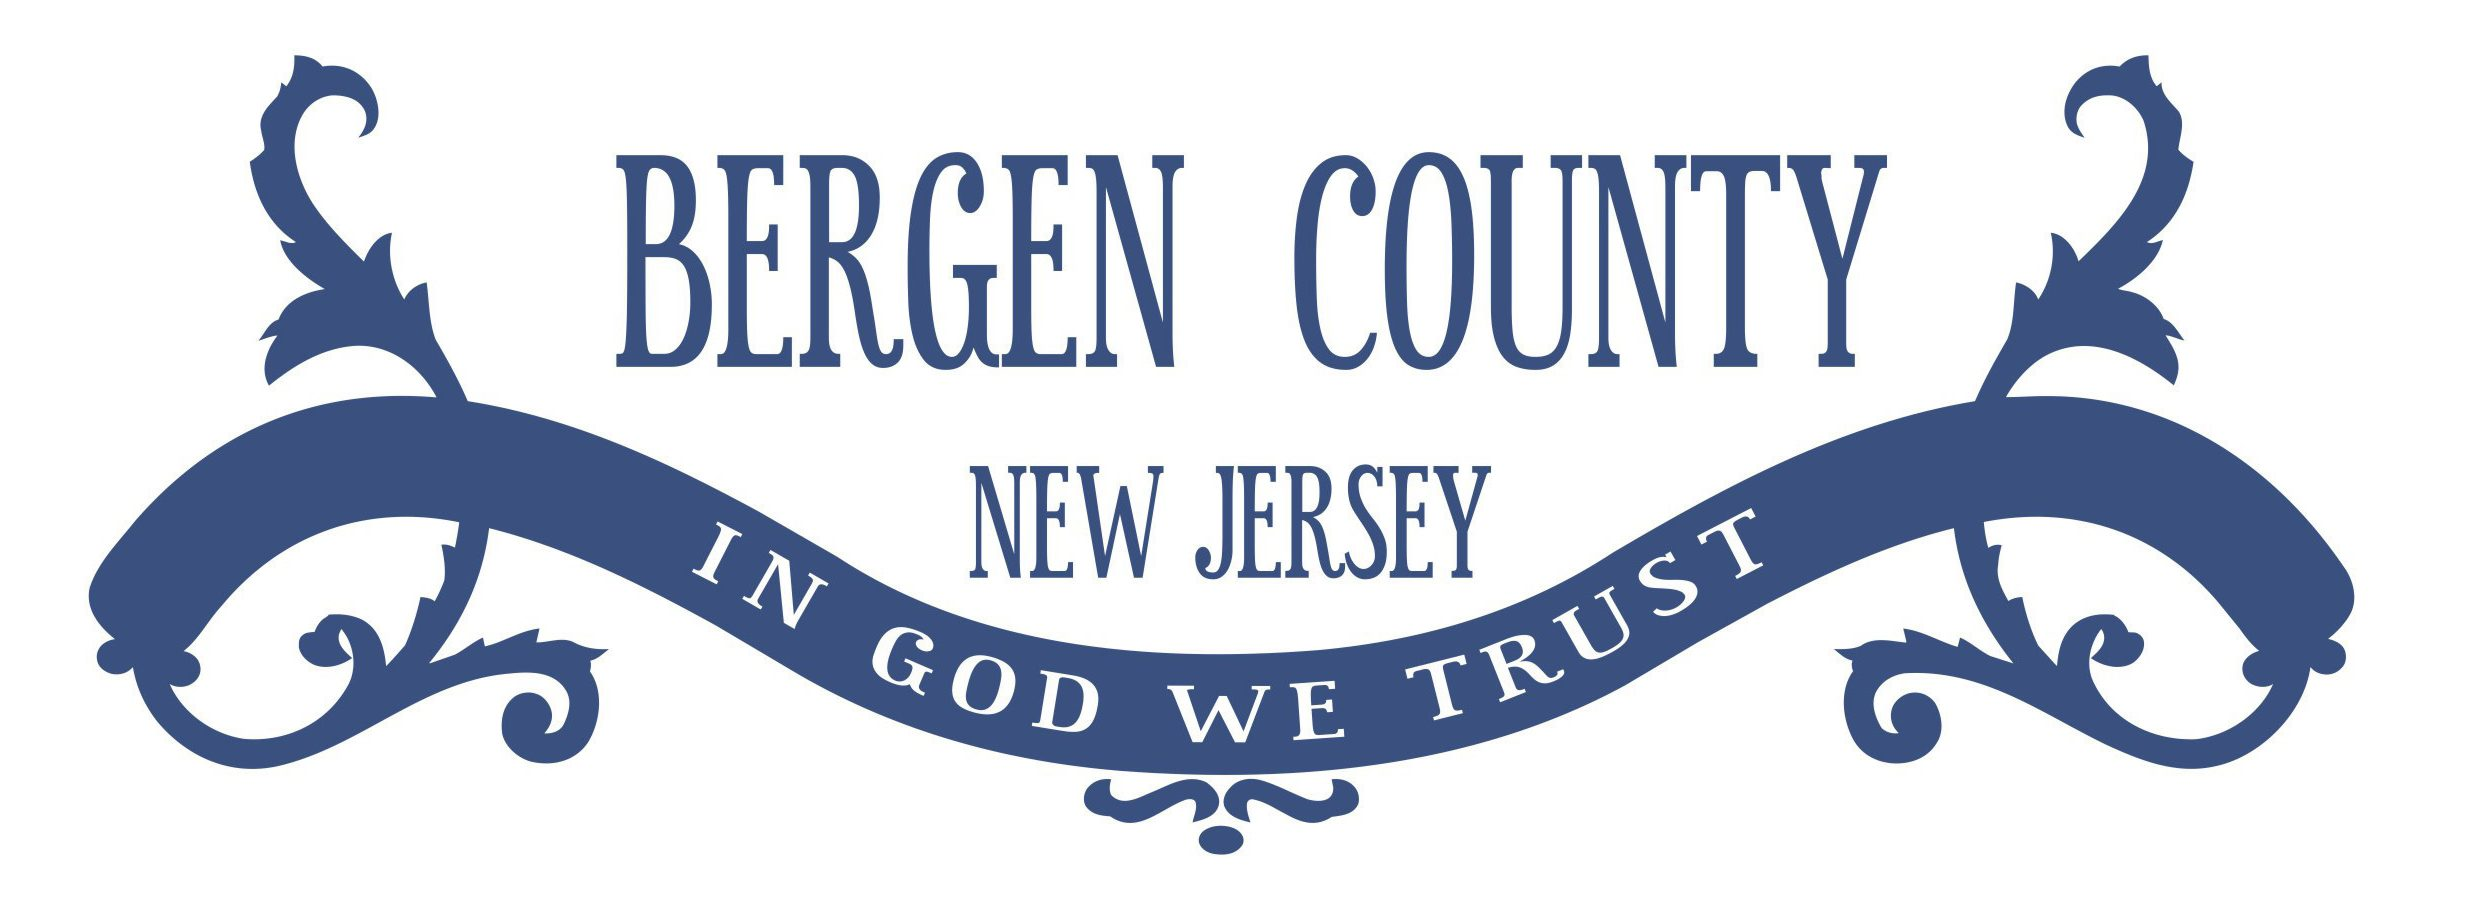 Bergen county, North Jersey